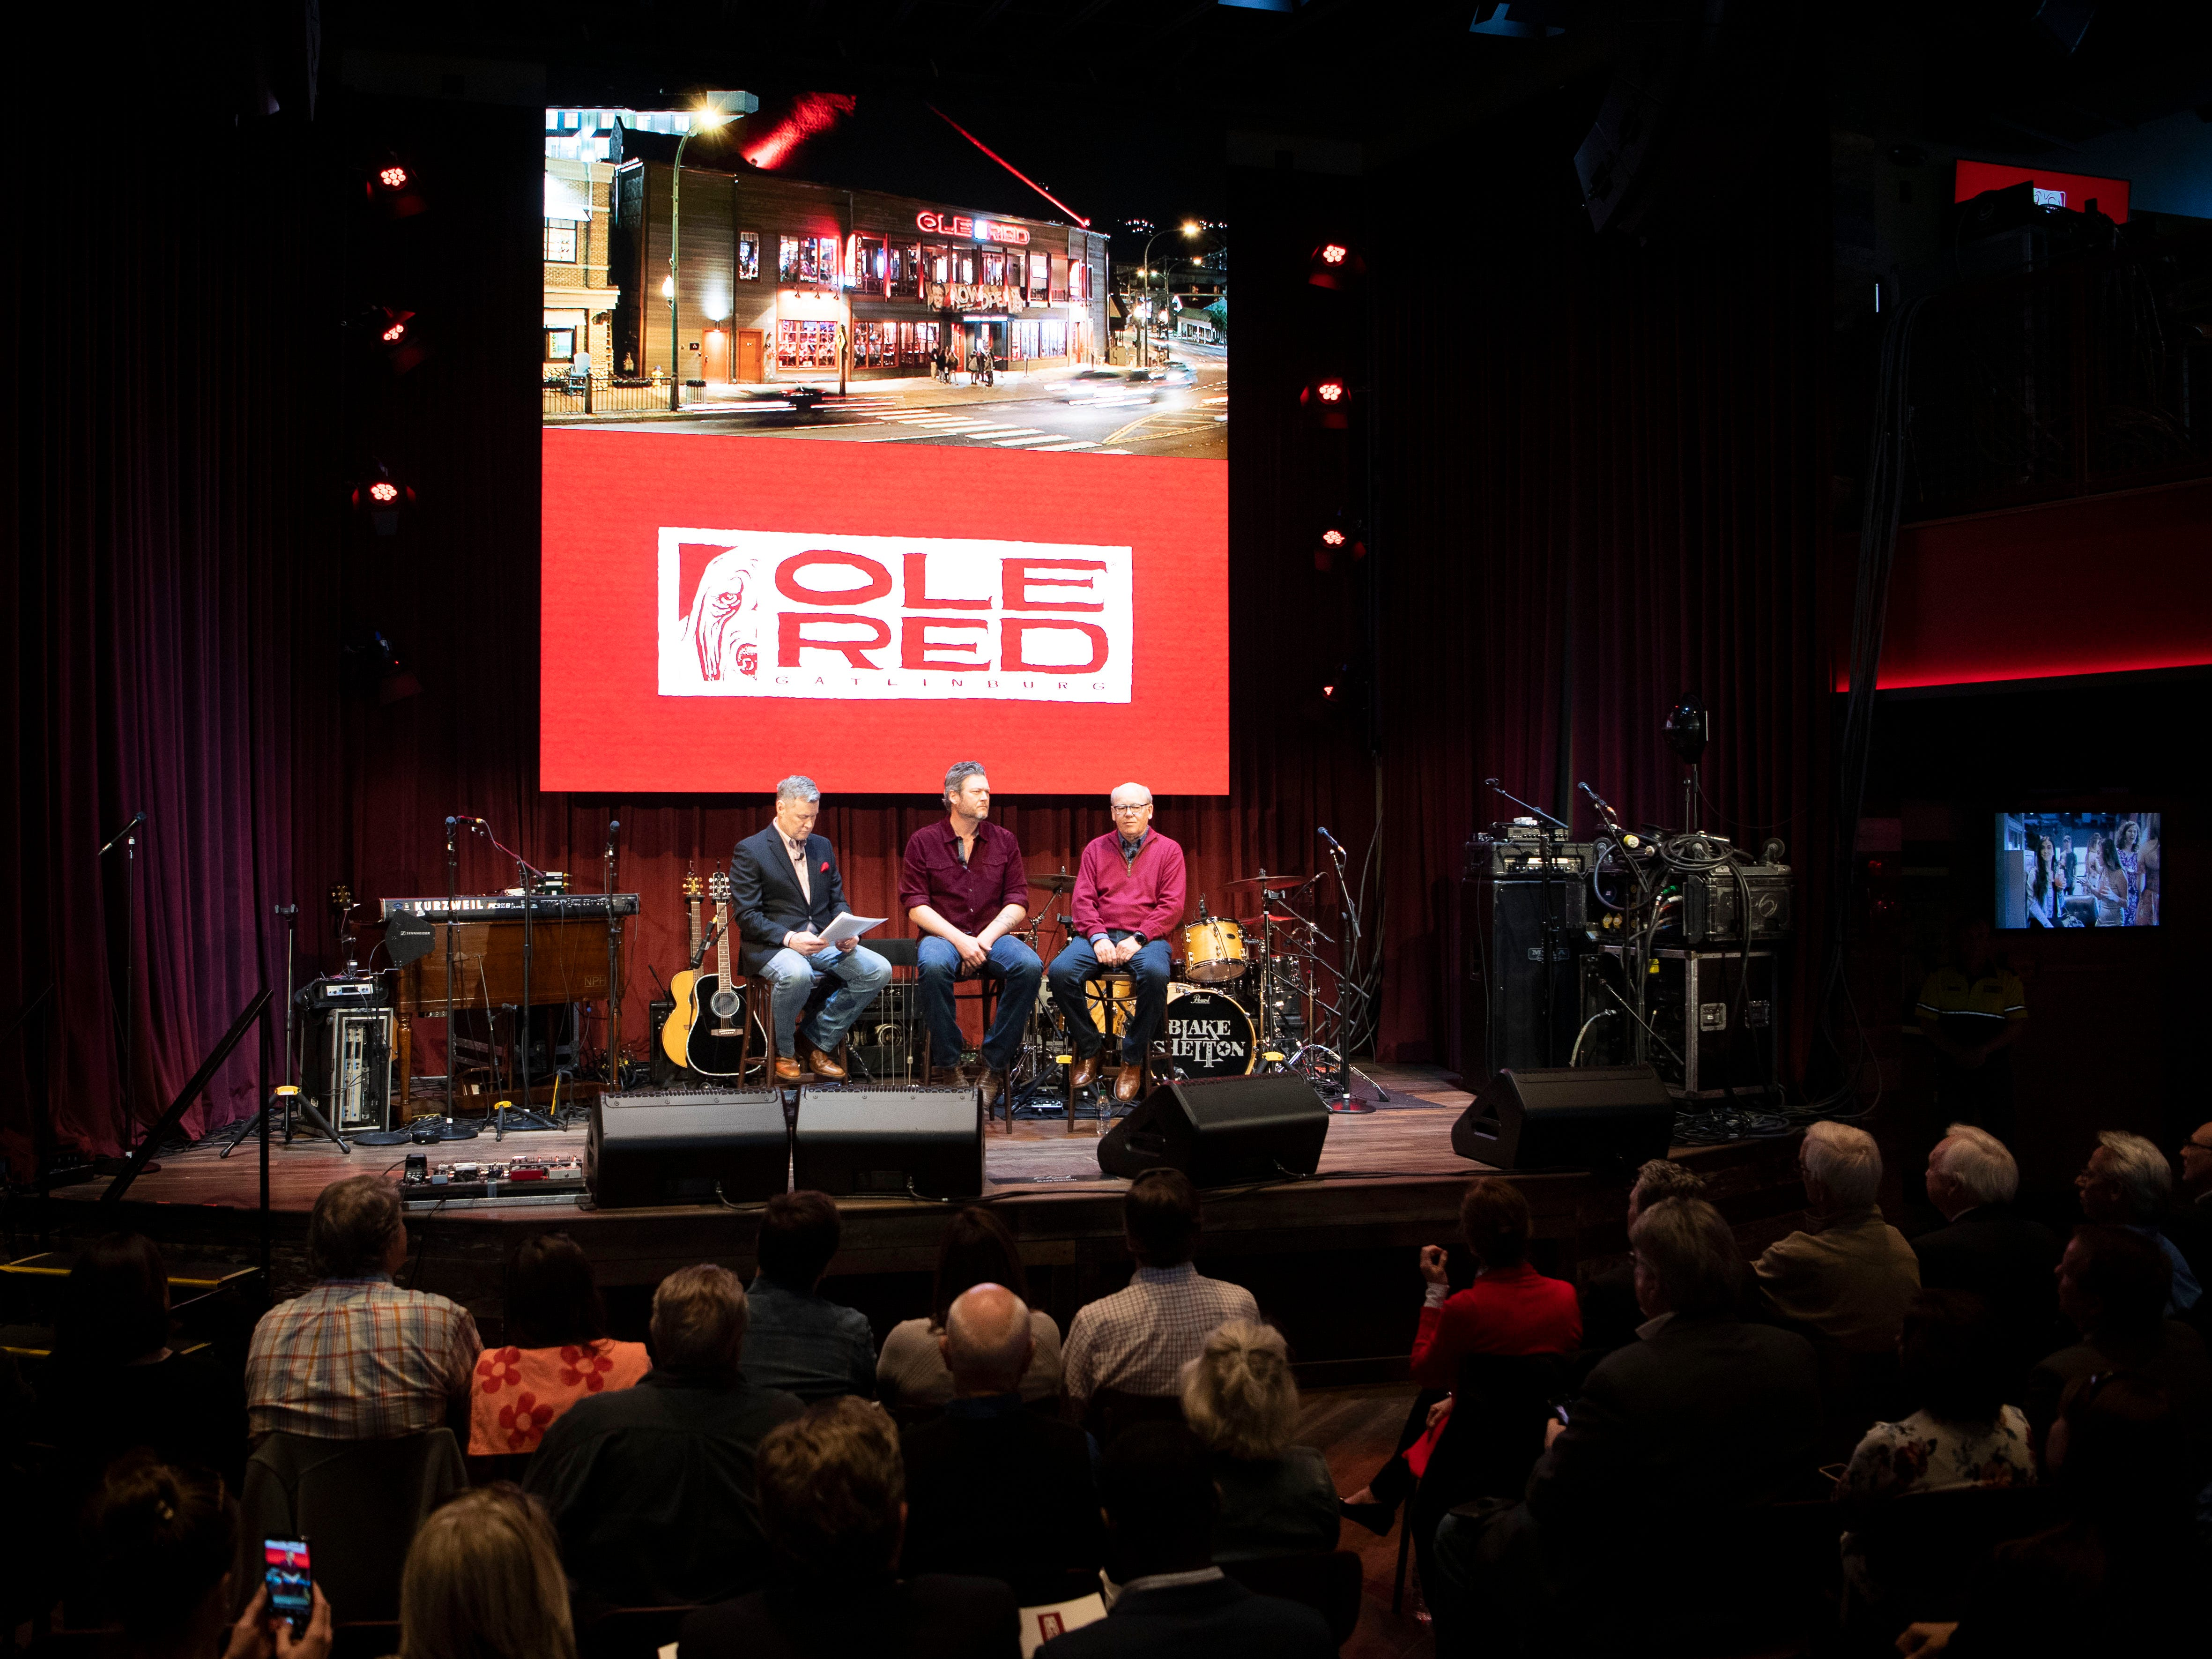 Gatlinburg city officials and guests attend a news conference with Blake Shelton, center, and Ryman Hospitality Properties CEO Colin Reed that was emceed by 650 AM WSM radio personality Bill Cody at Ole Red Gatlinburg on Wednesday, March 13, 2019 for the grand opening of Ole Red Gatlinbur.